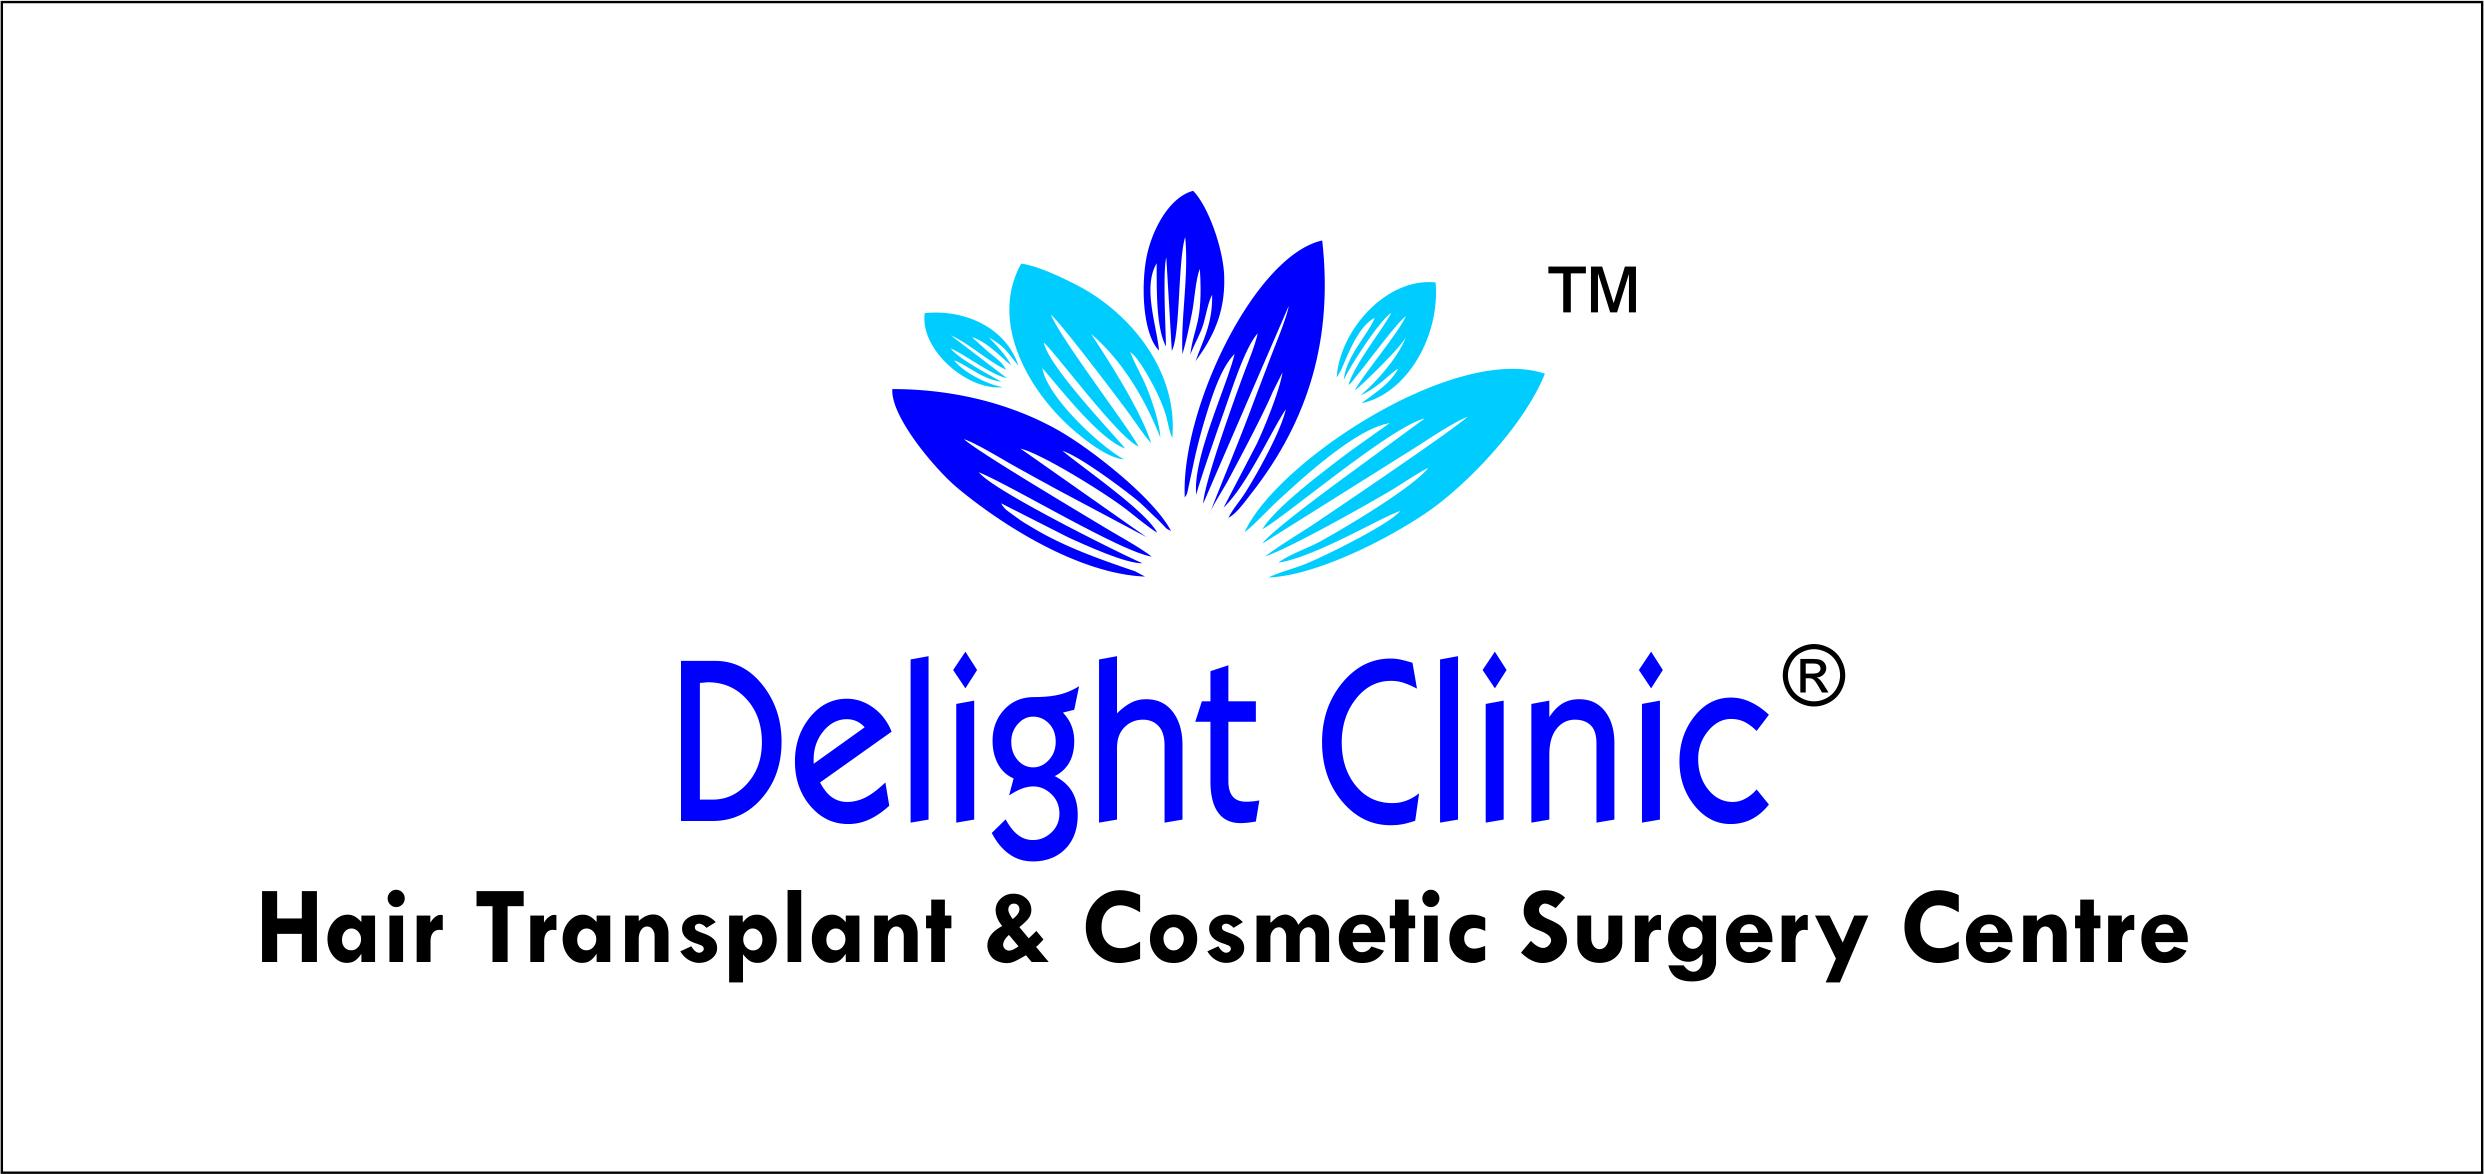 Delight Clinic - Hair Transplant, Laser & Cosmetic Surgery Centre